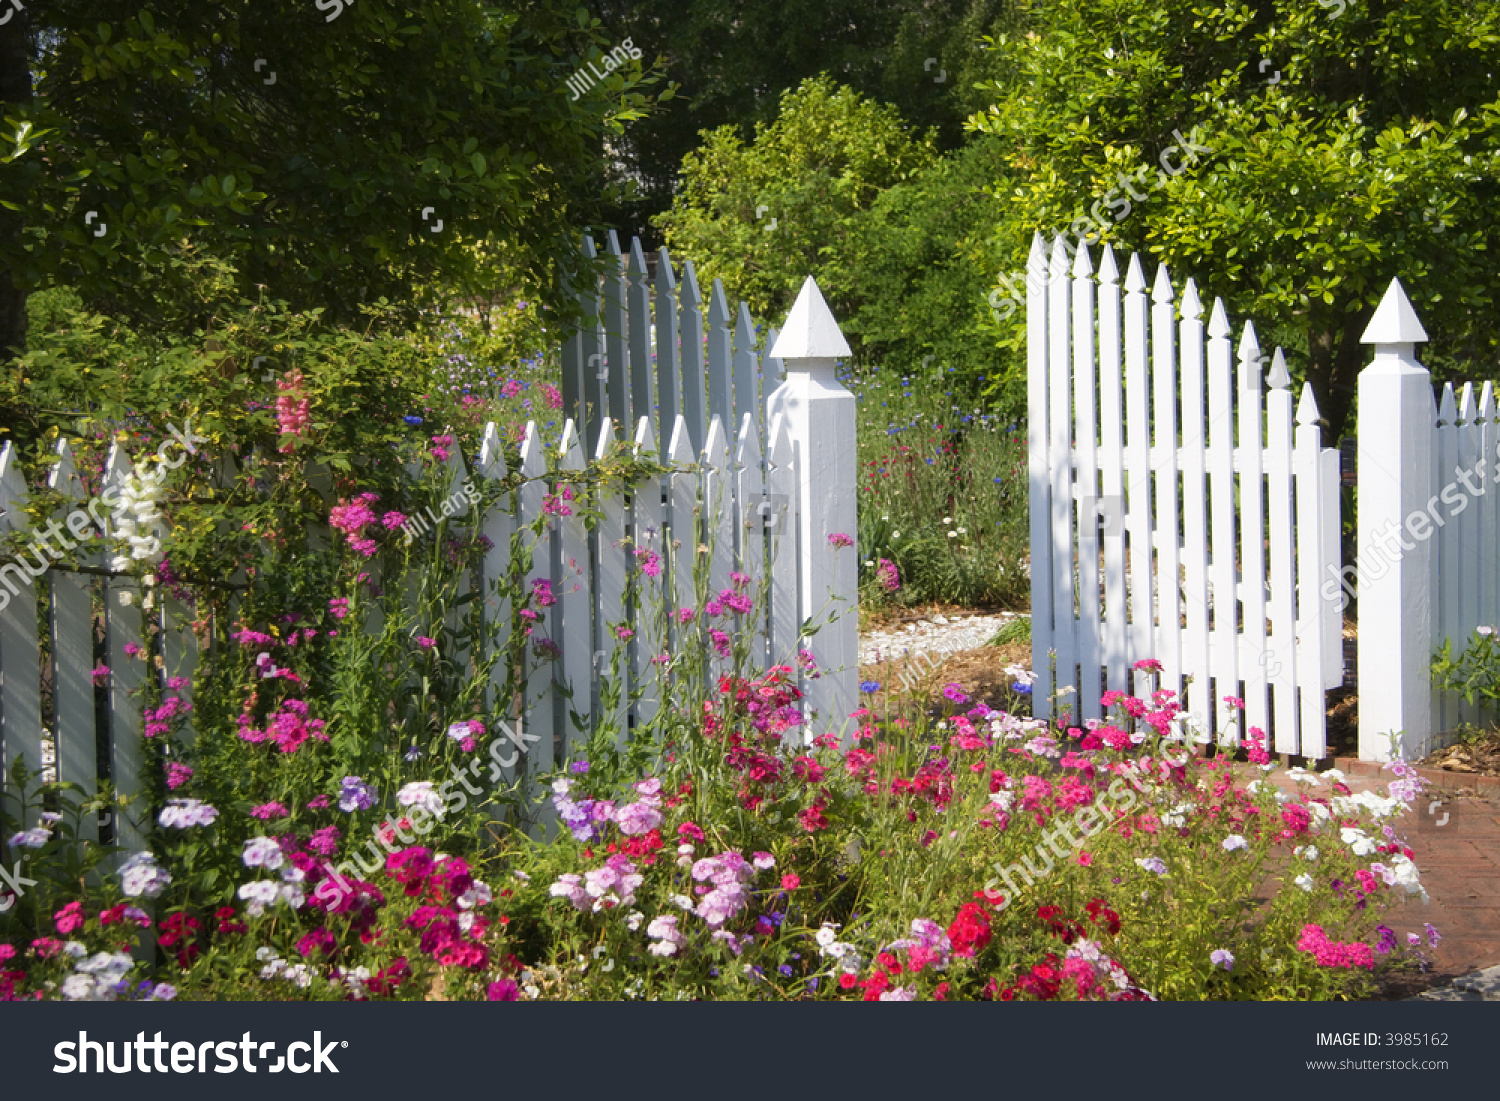 Garden gate white picket fence stock photo